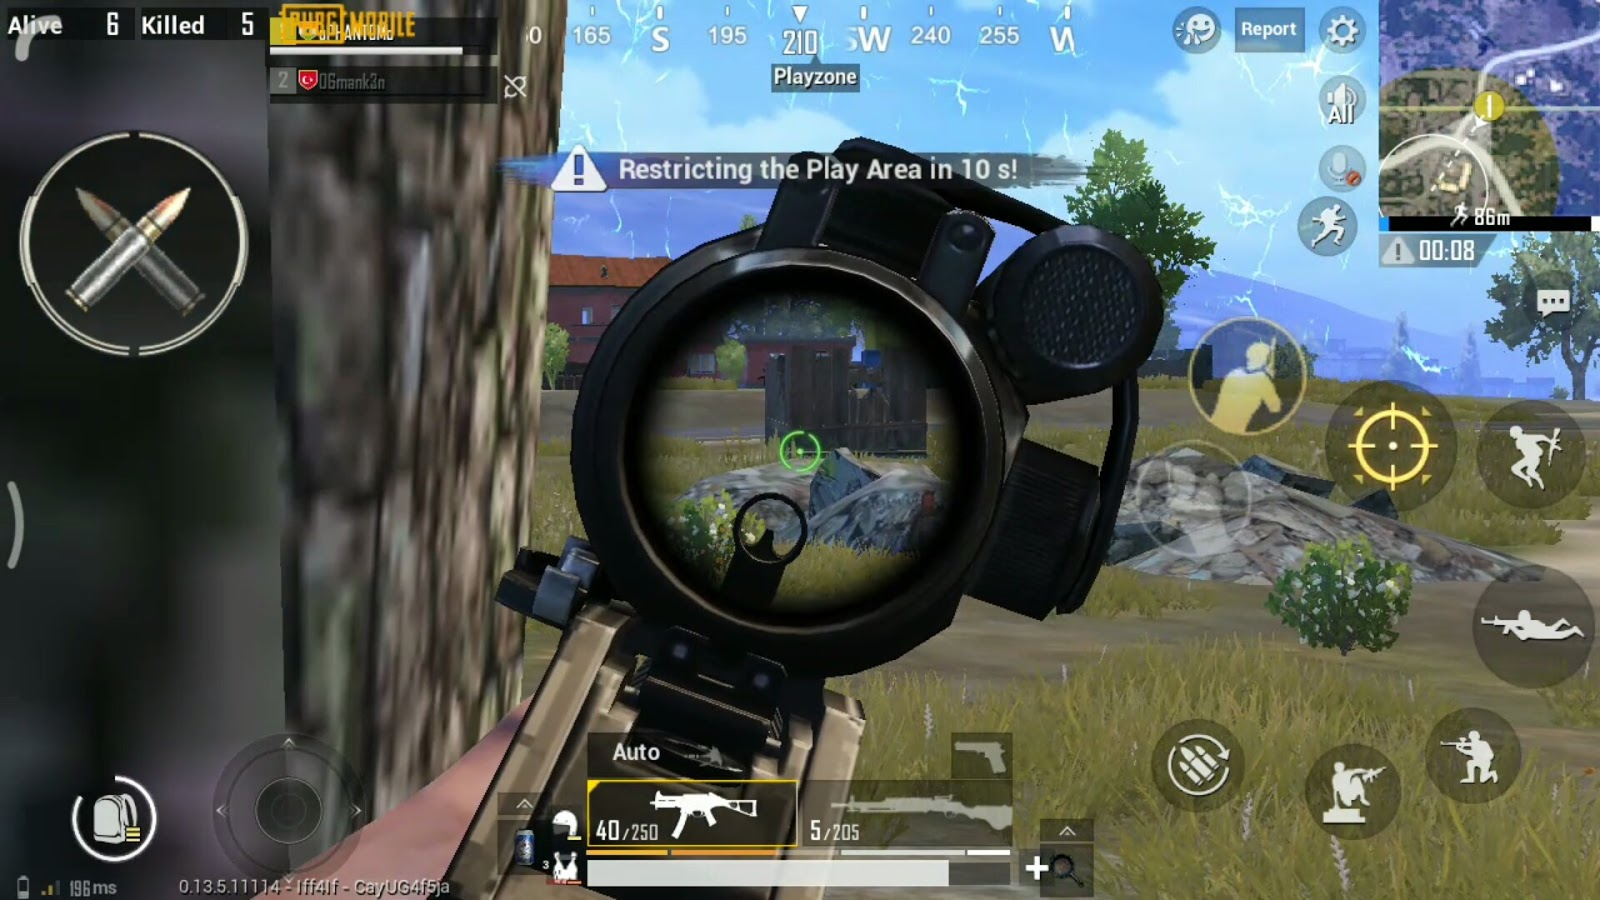 Playing Pubg With Emulator Can Be Legal But The Scope Of Cheating